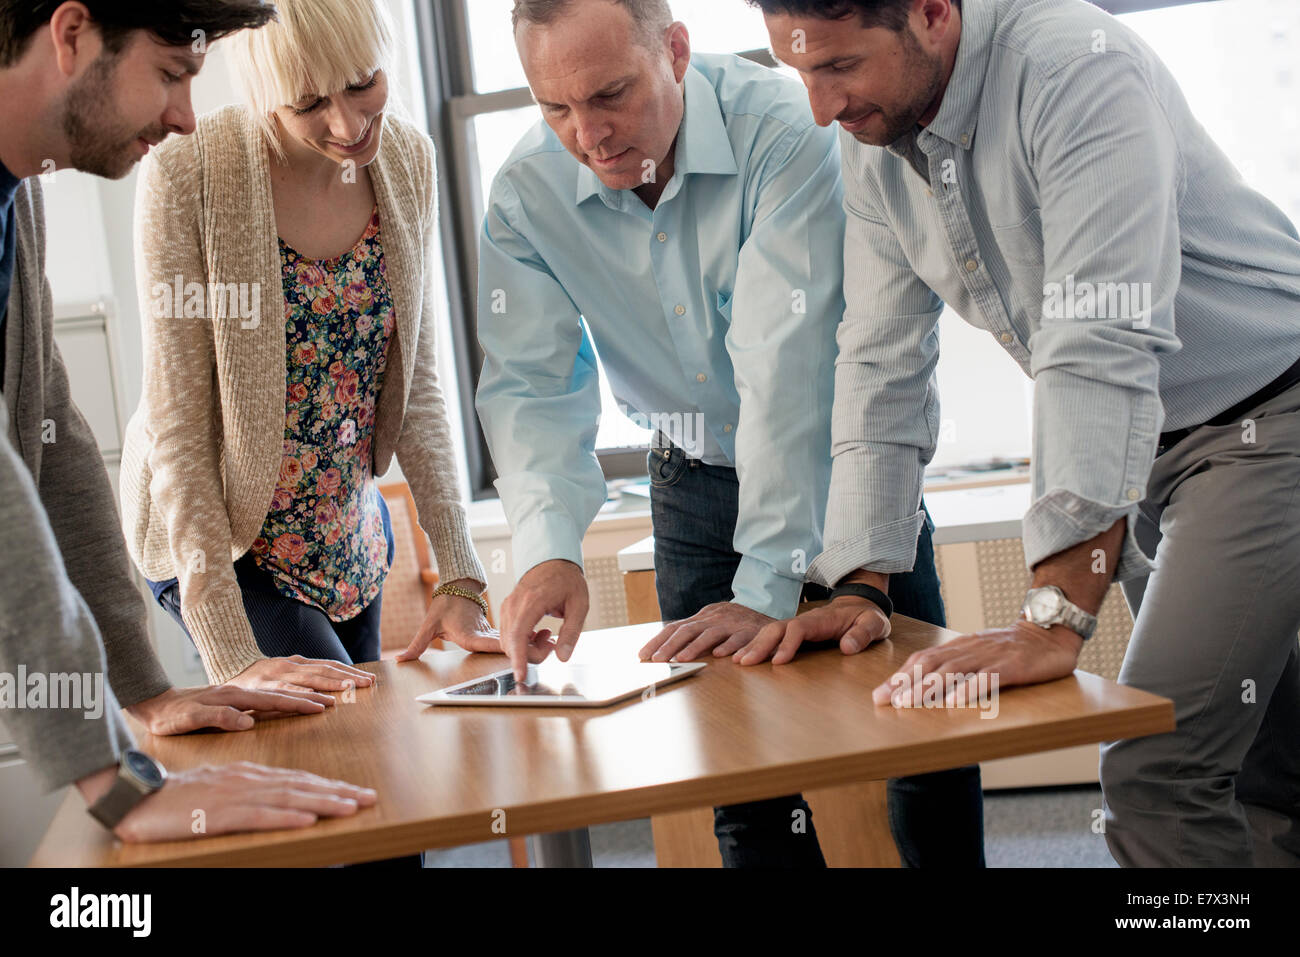 Four people, three man and a woman leaning over a digital tablet on a table. - Stock Image